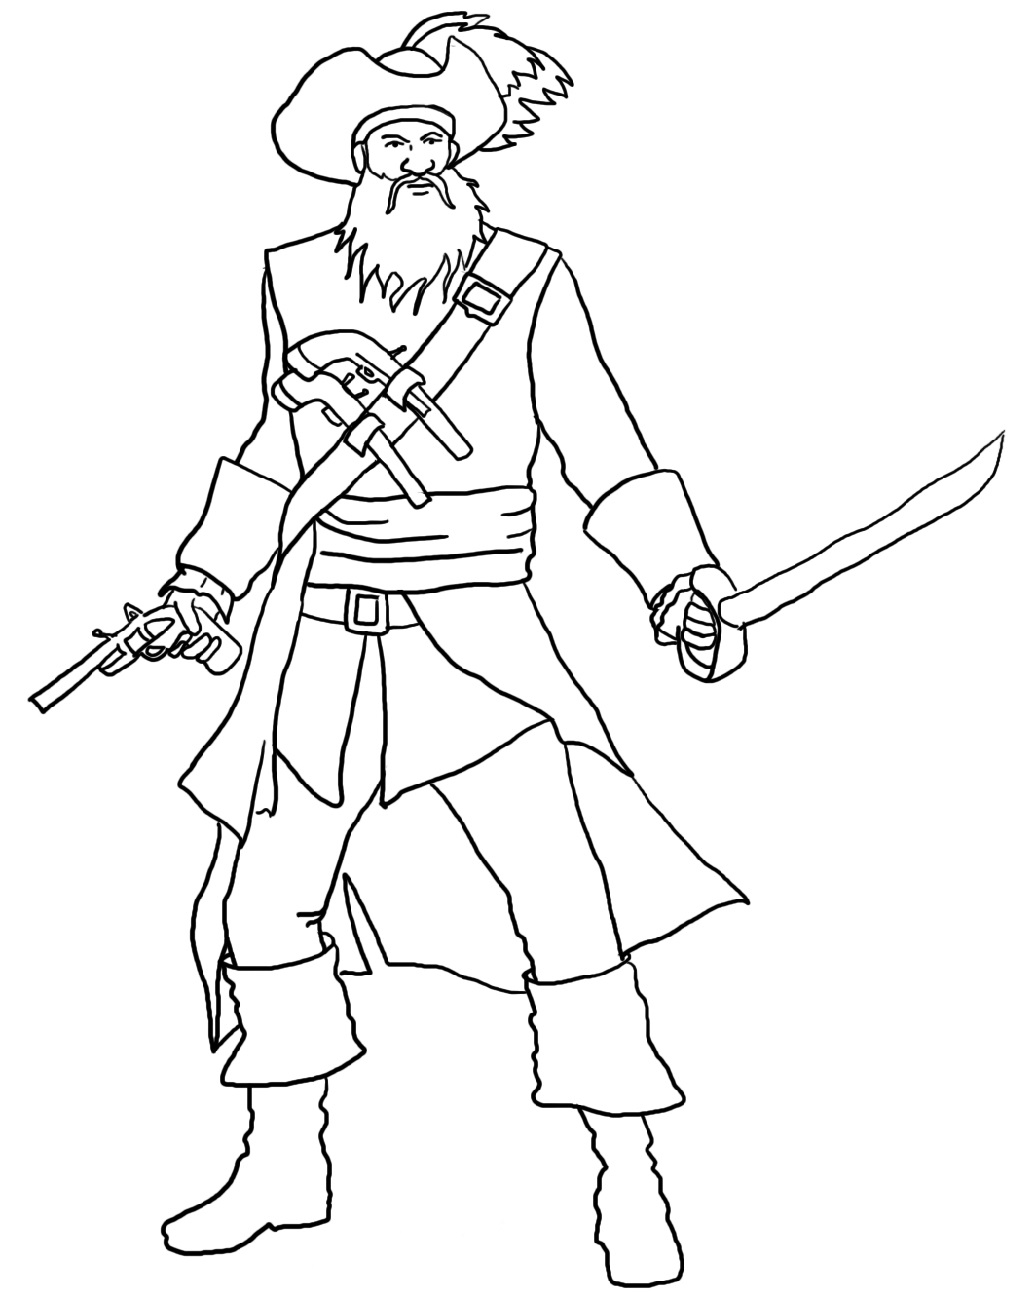 pirate images to colour pirates coloring pages download and print pirates colour pirate to images